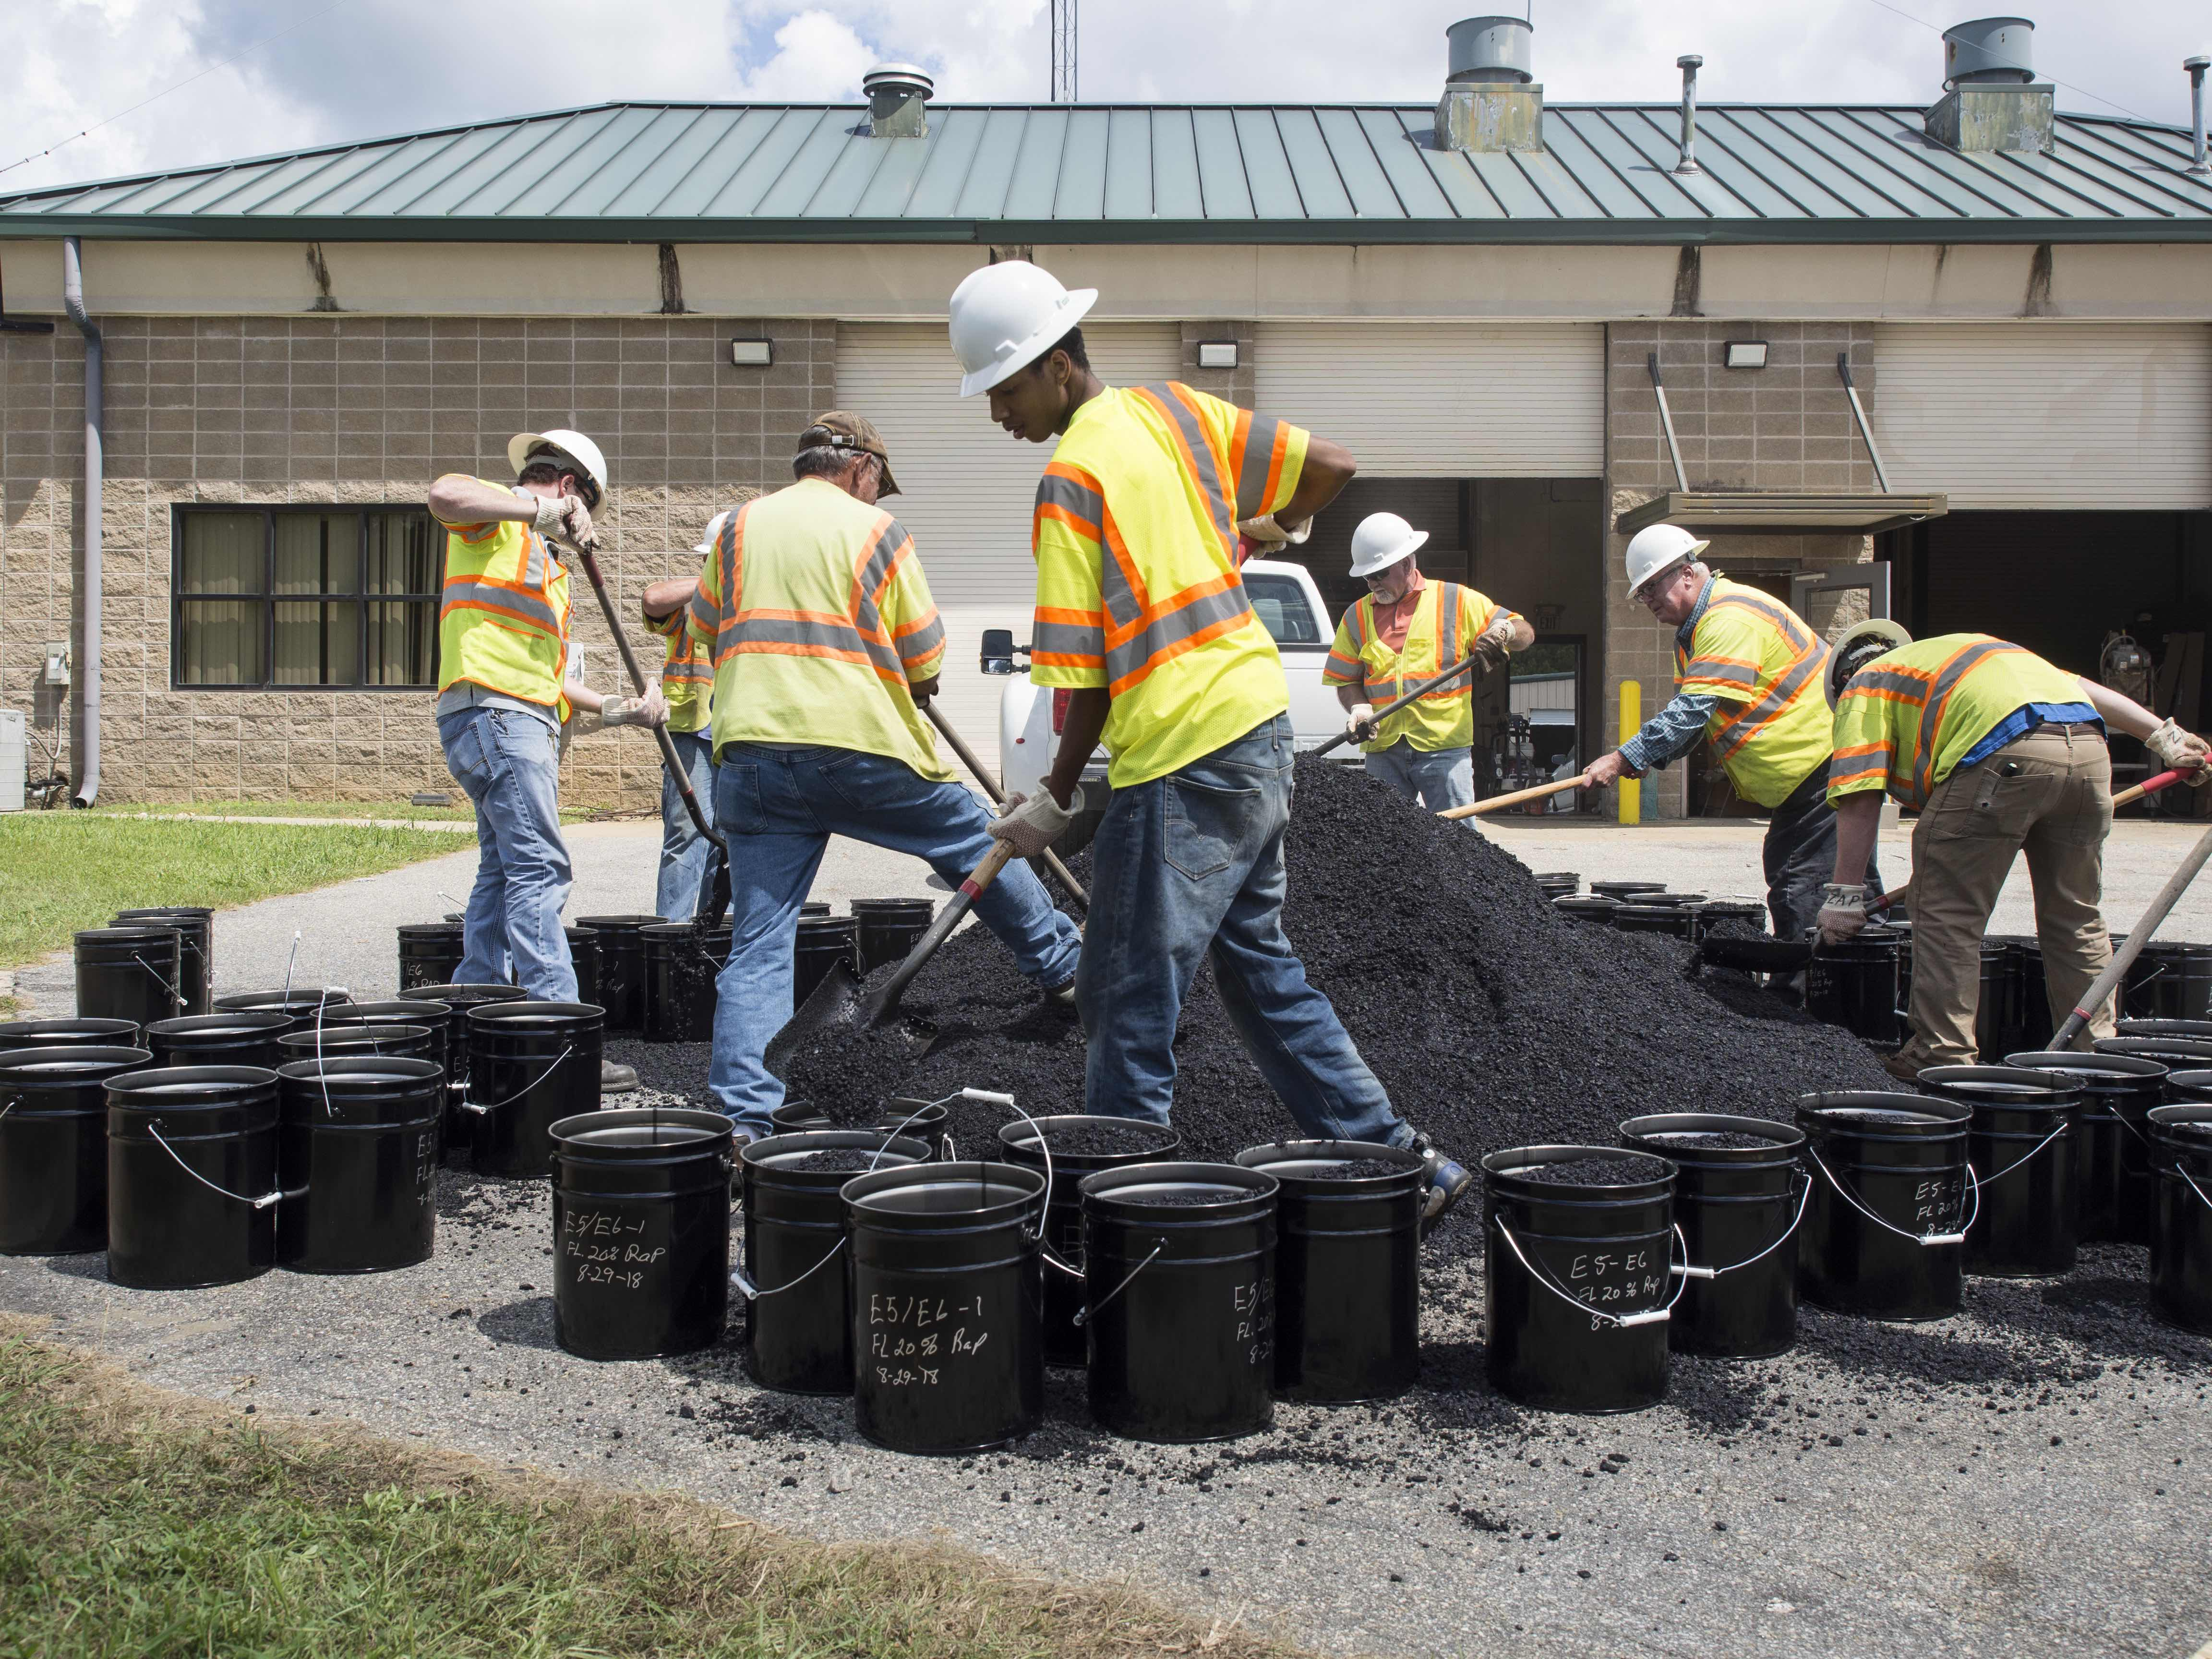 NCAT employees and students shoveled over 1000 buckets of asphalt mix during construction for laboratory testing.